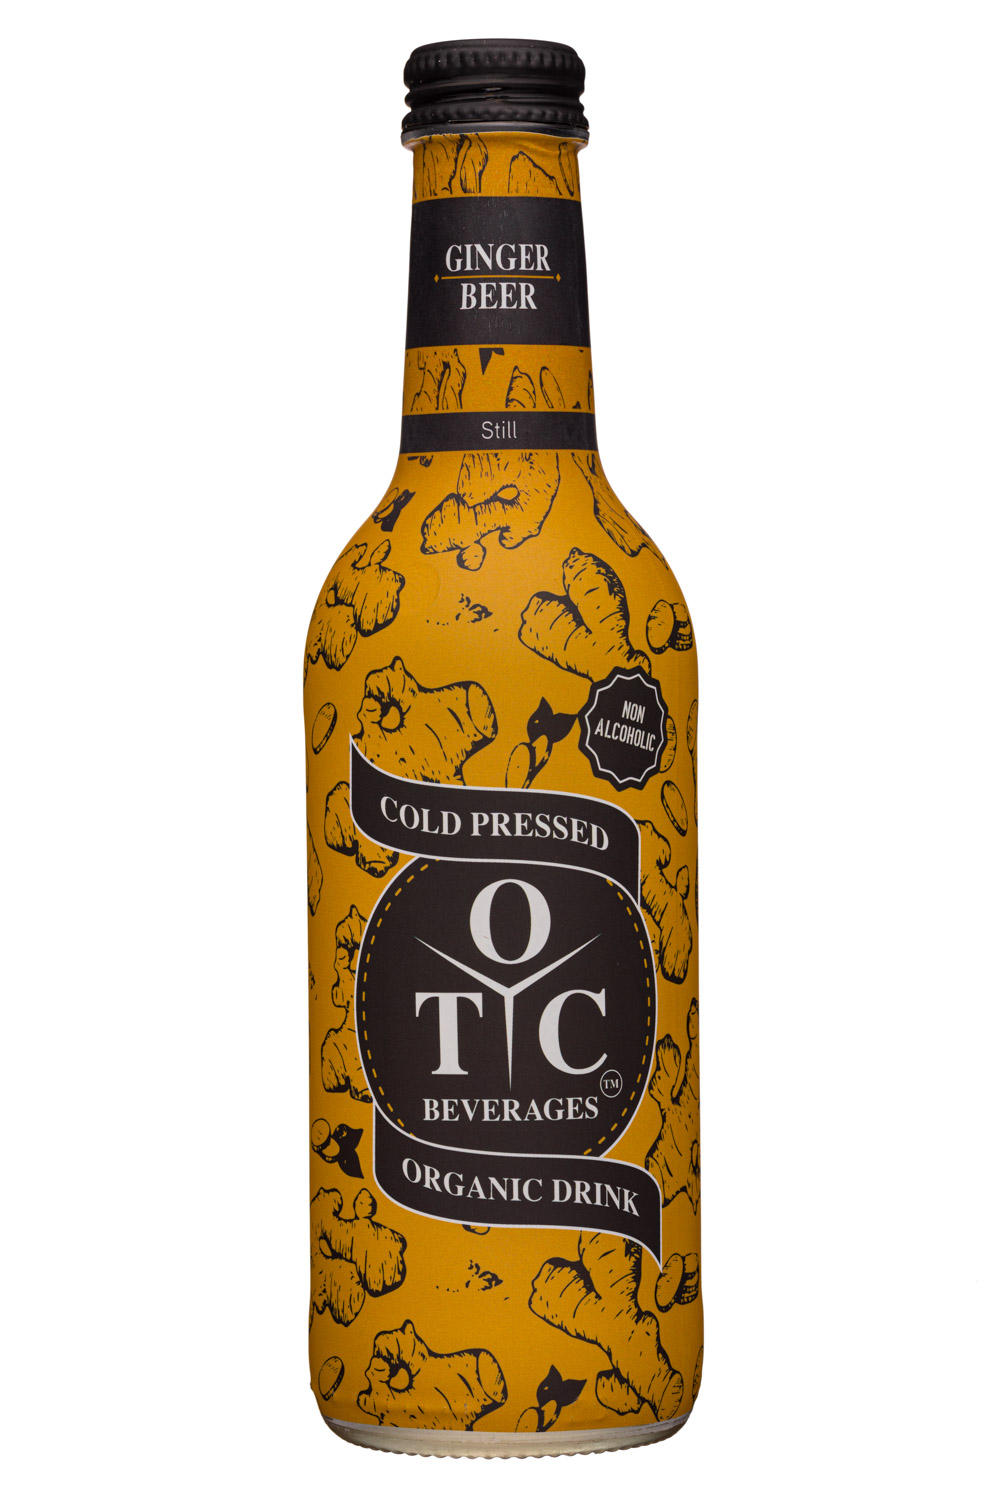 OTC Beverages: OTCBeverages-330ml-GingerBeer-Still-Front